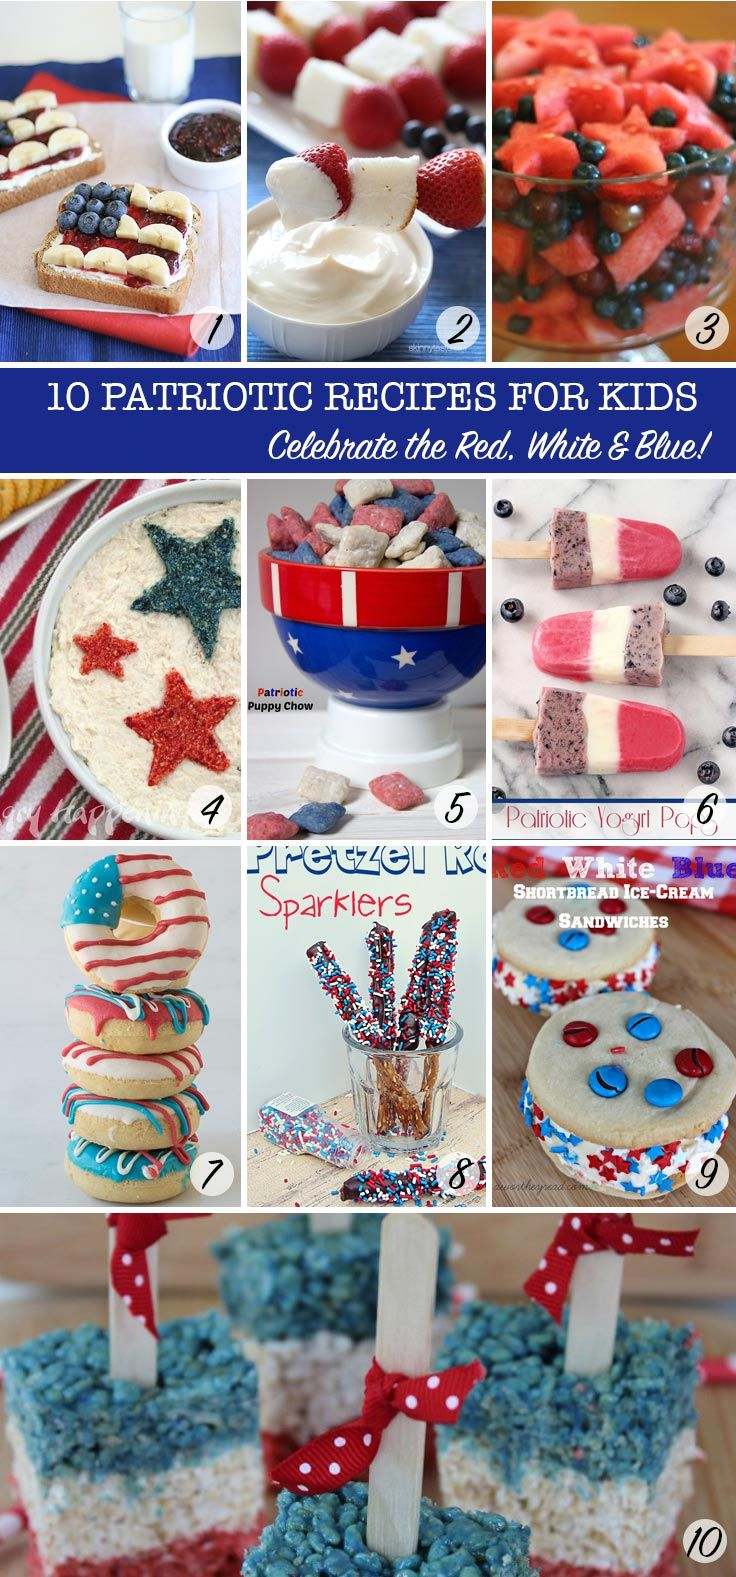 LOVING these Red, White and Blue recipes - so patriotic - the kids will love them too!